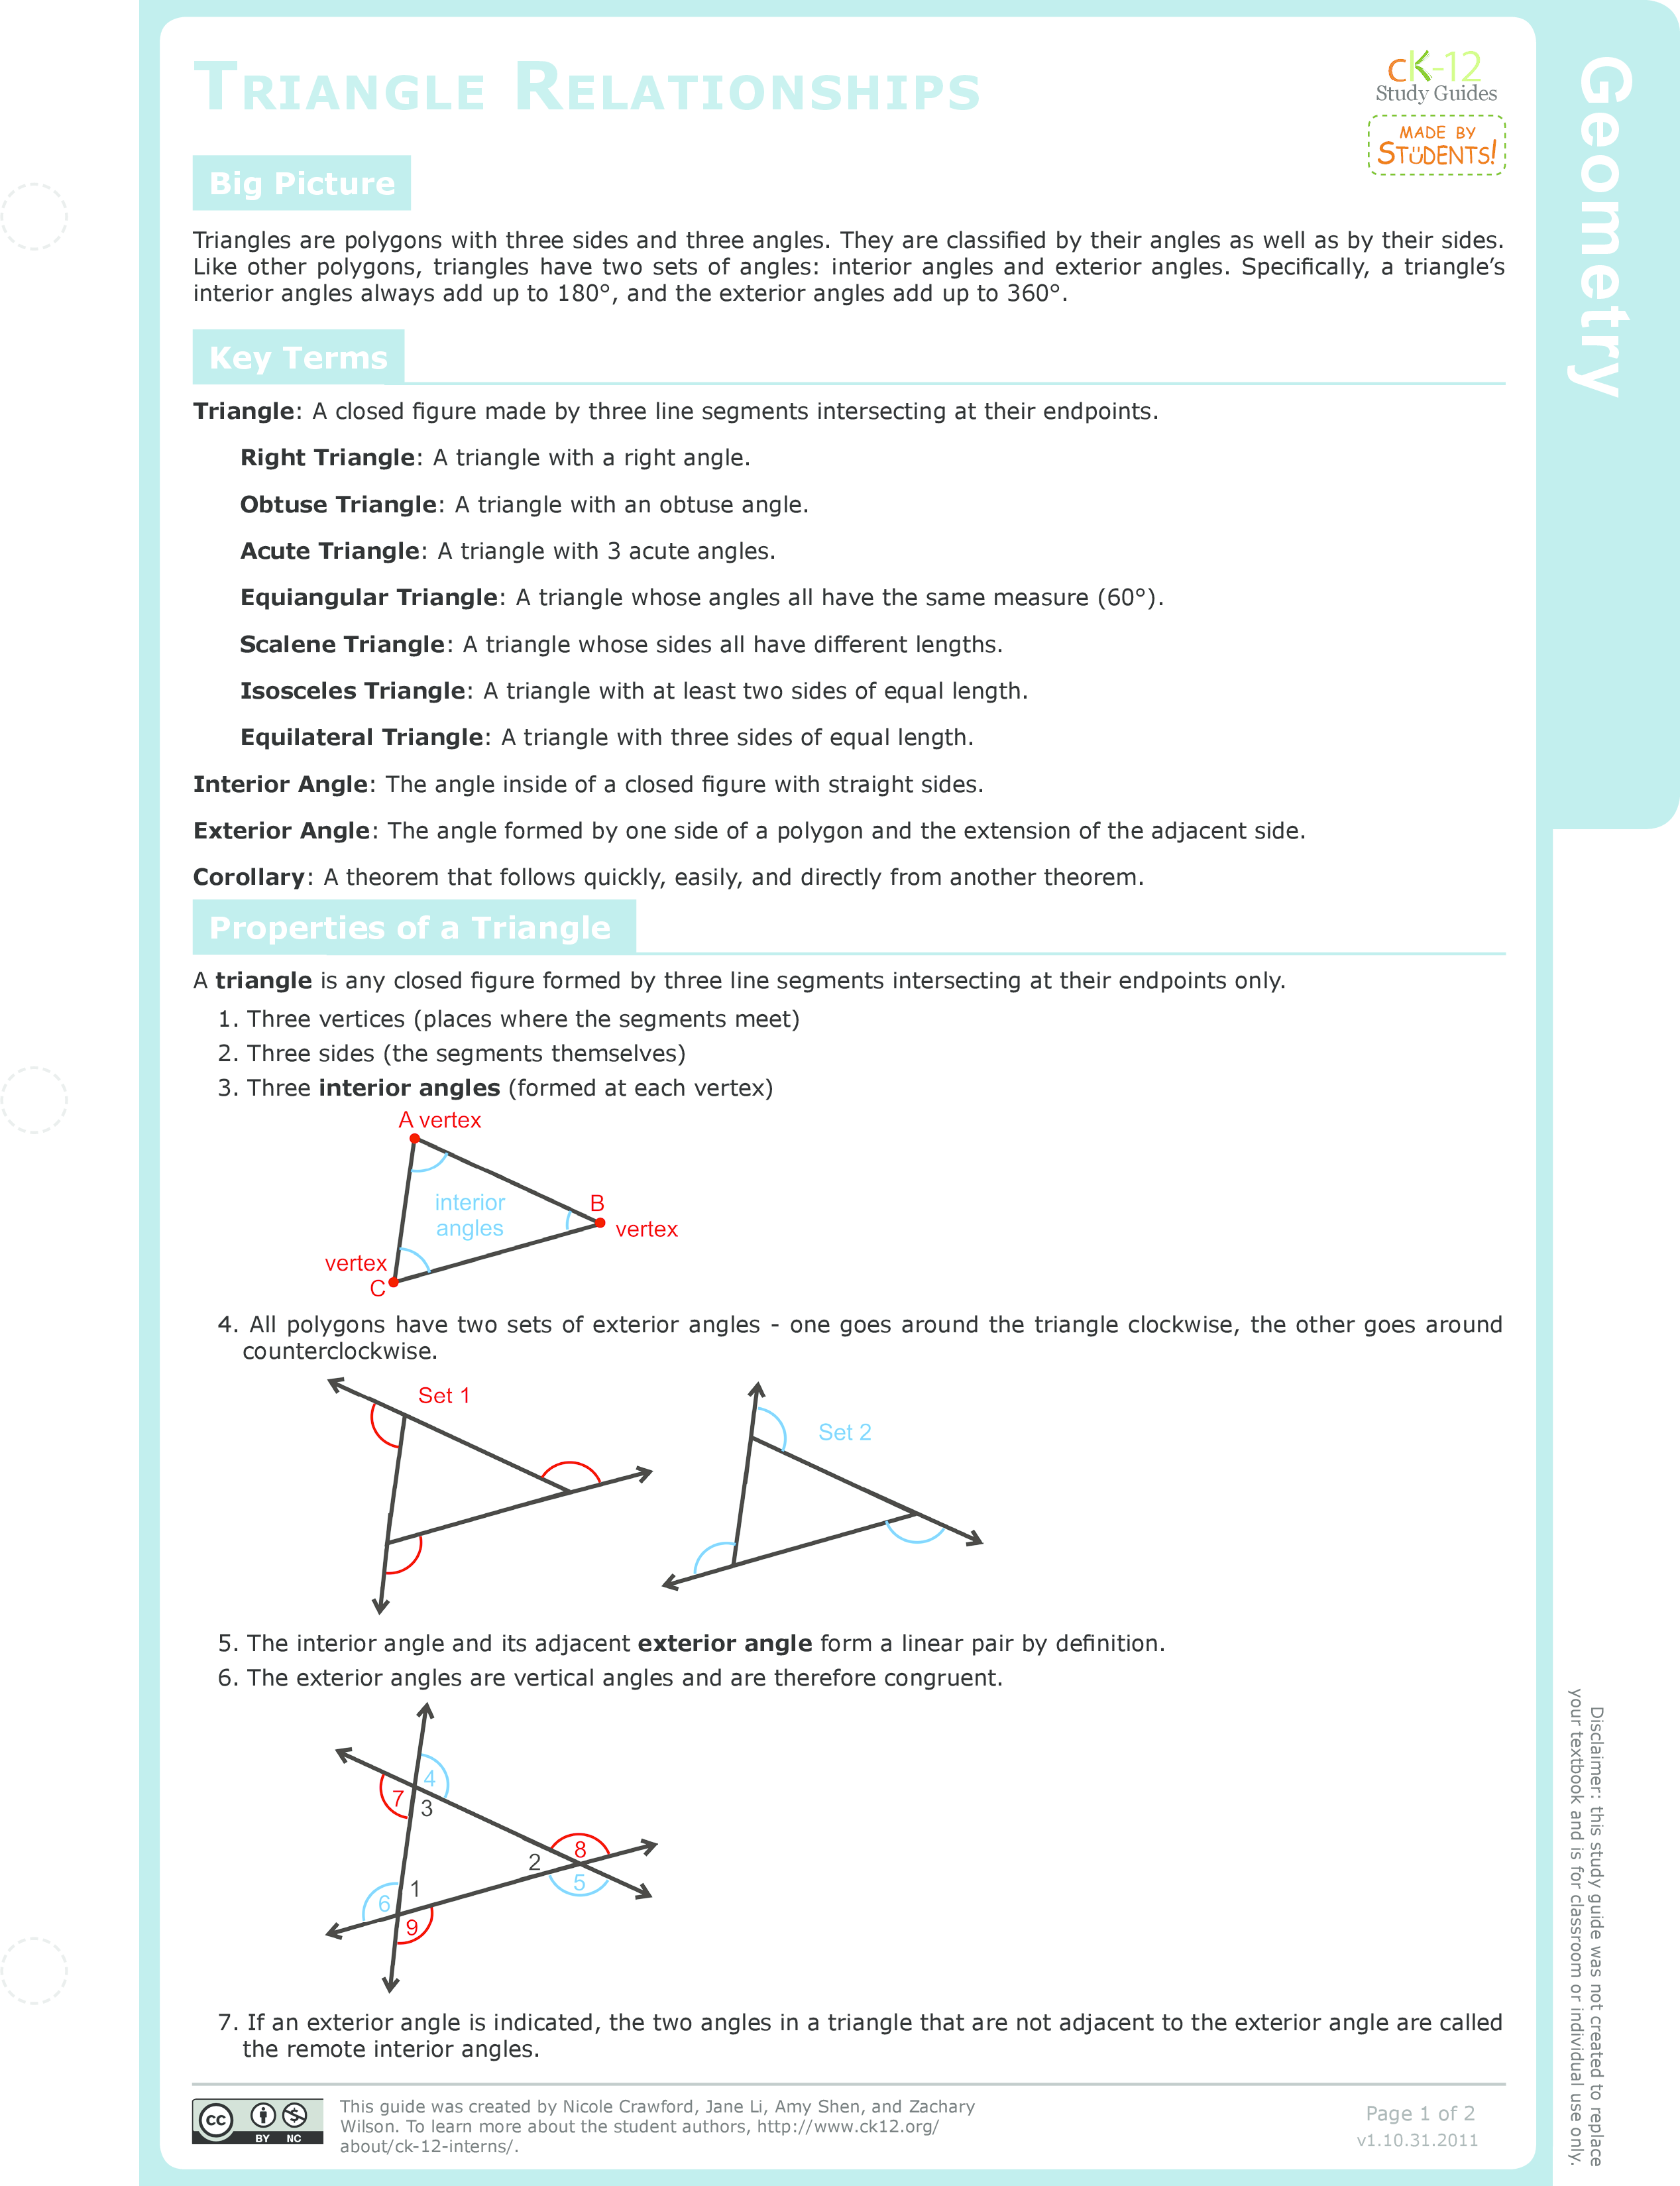 Exterior Angles and Theorems